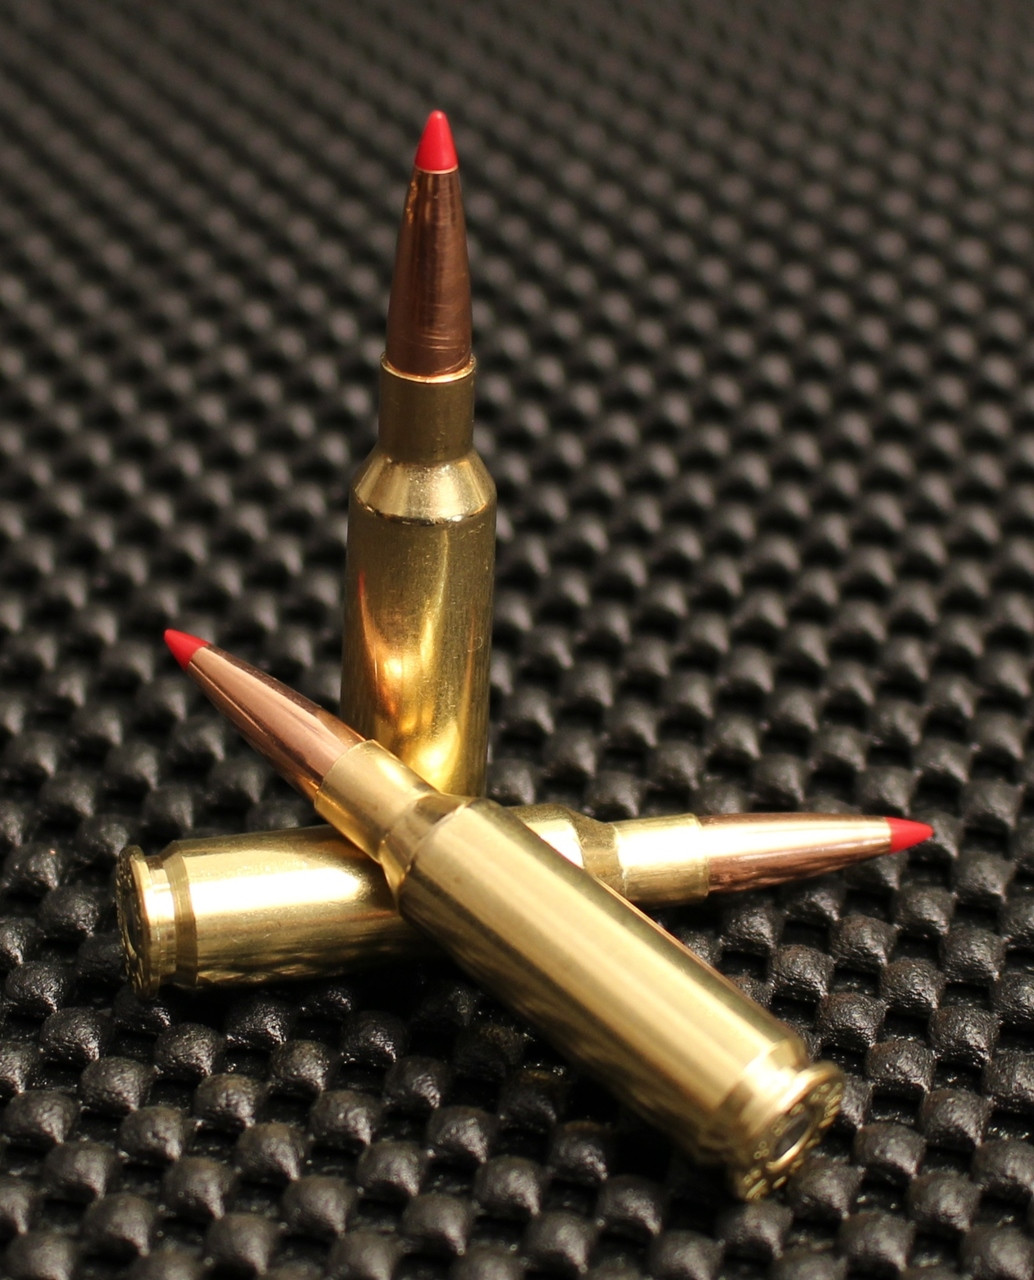 224 Valkryie 80 Grain ELD Match - 20 Rounds